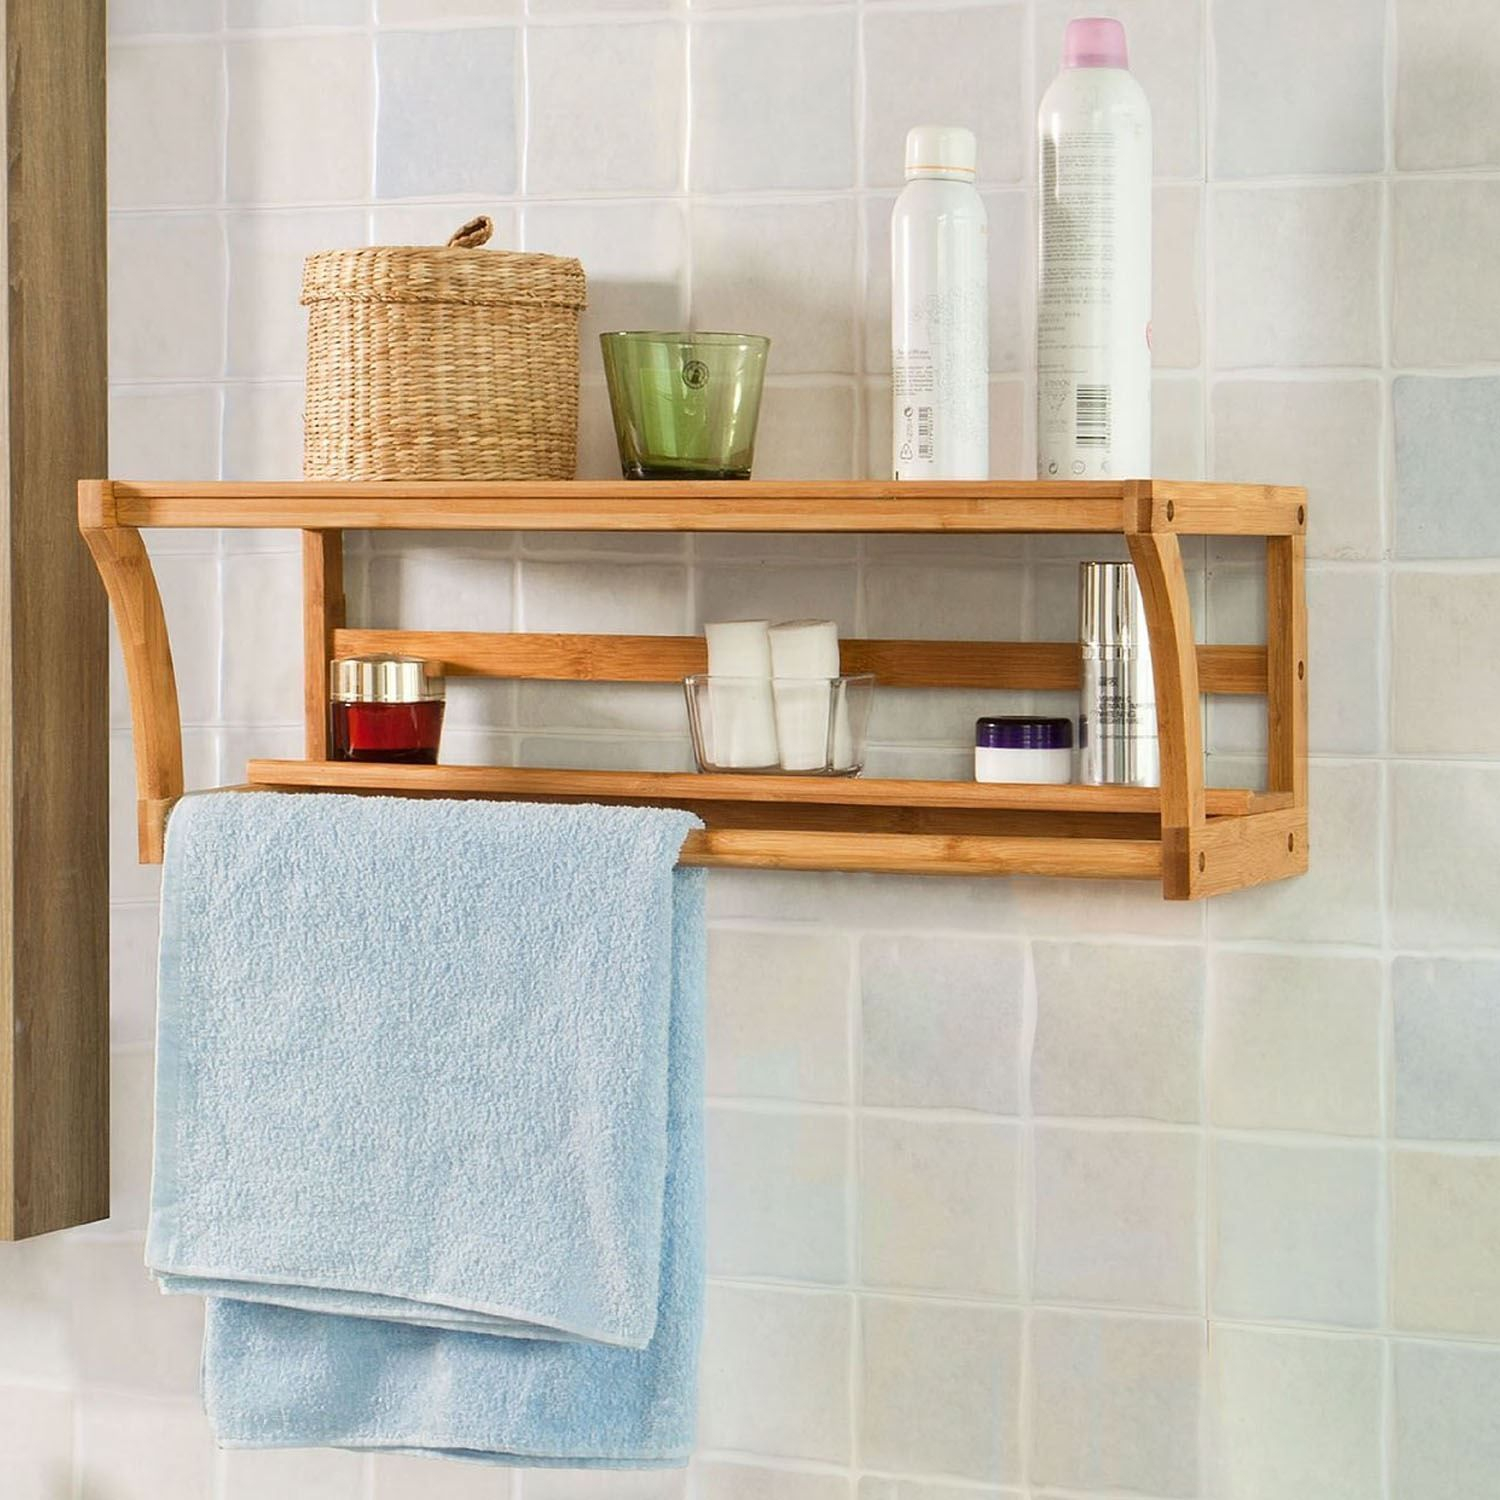 New Bamboo Wall Mounted Wood Shelf Rack Towel Rail Holder intended for dimensions 1500 X 1500